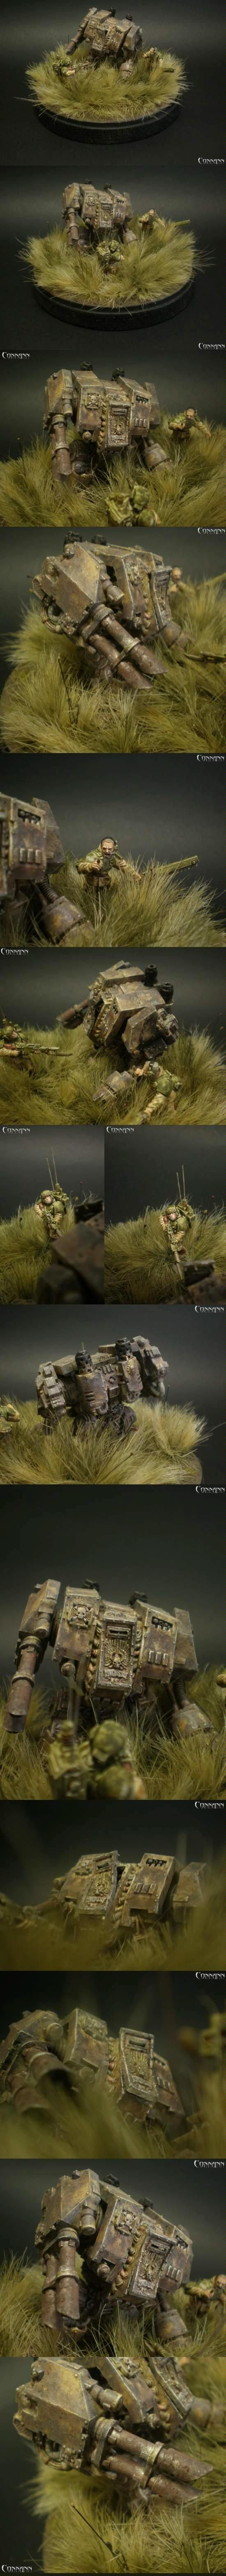 28mm, Diorama, Dreadnought, Imperial Guard, Space Marines, Warhammer 40,000